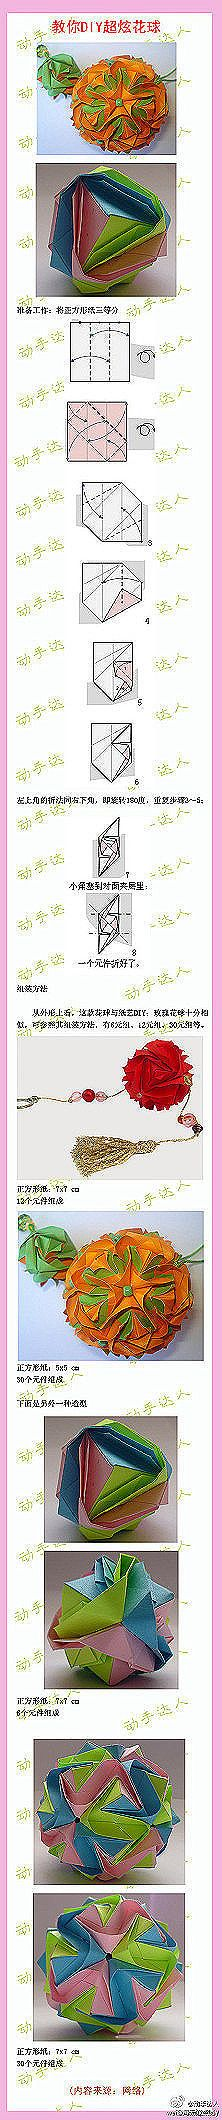 下一张  Tutorial for gorgeous origami flower.  I'd never be able to do this...but maybe others can